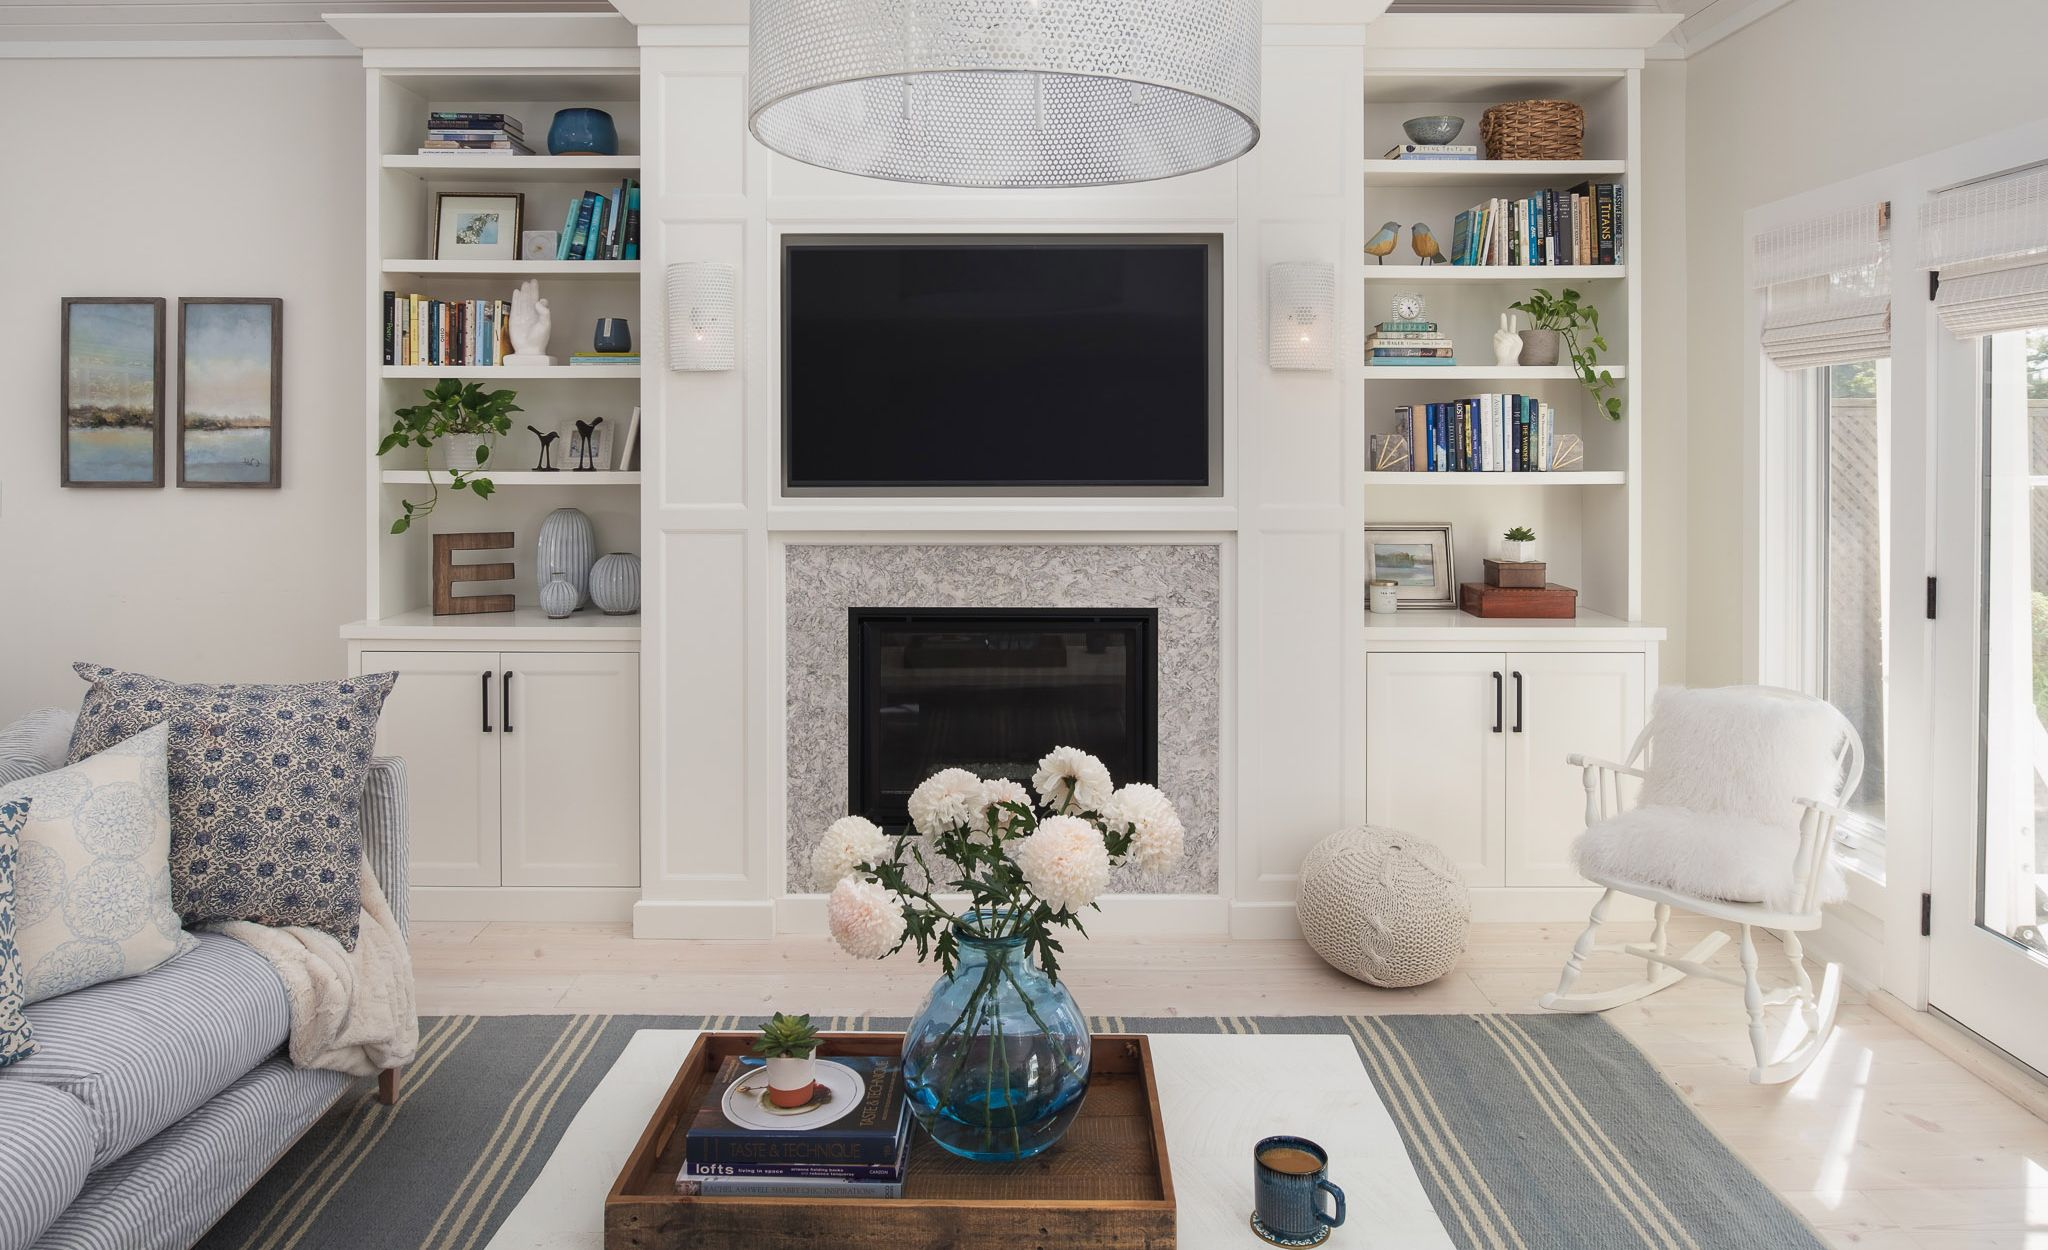 Cambria Berwyn fireplace surround paired with cabinets in a living room entertainment space.